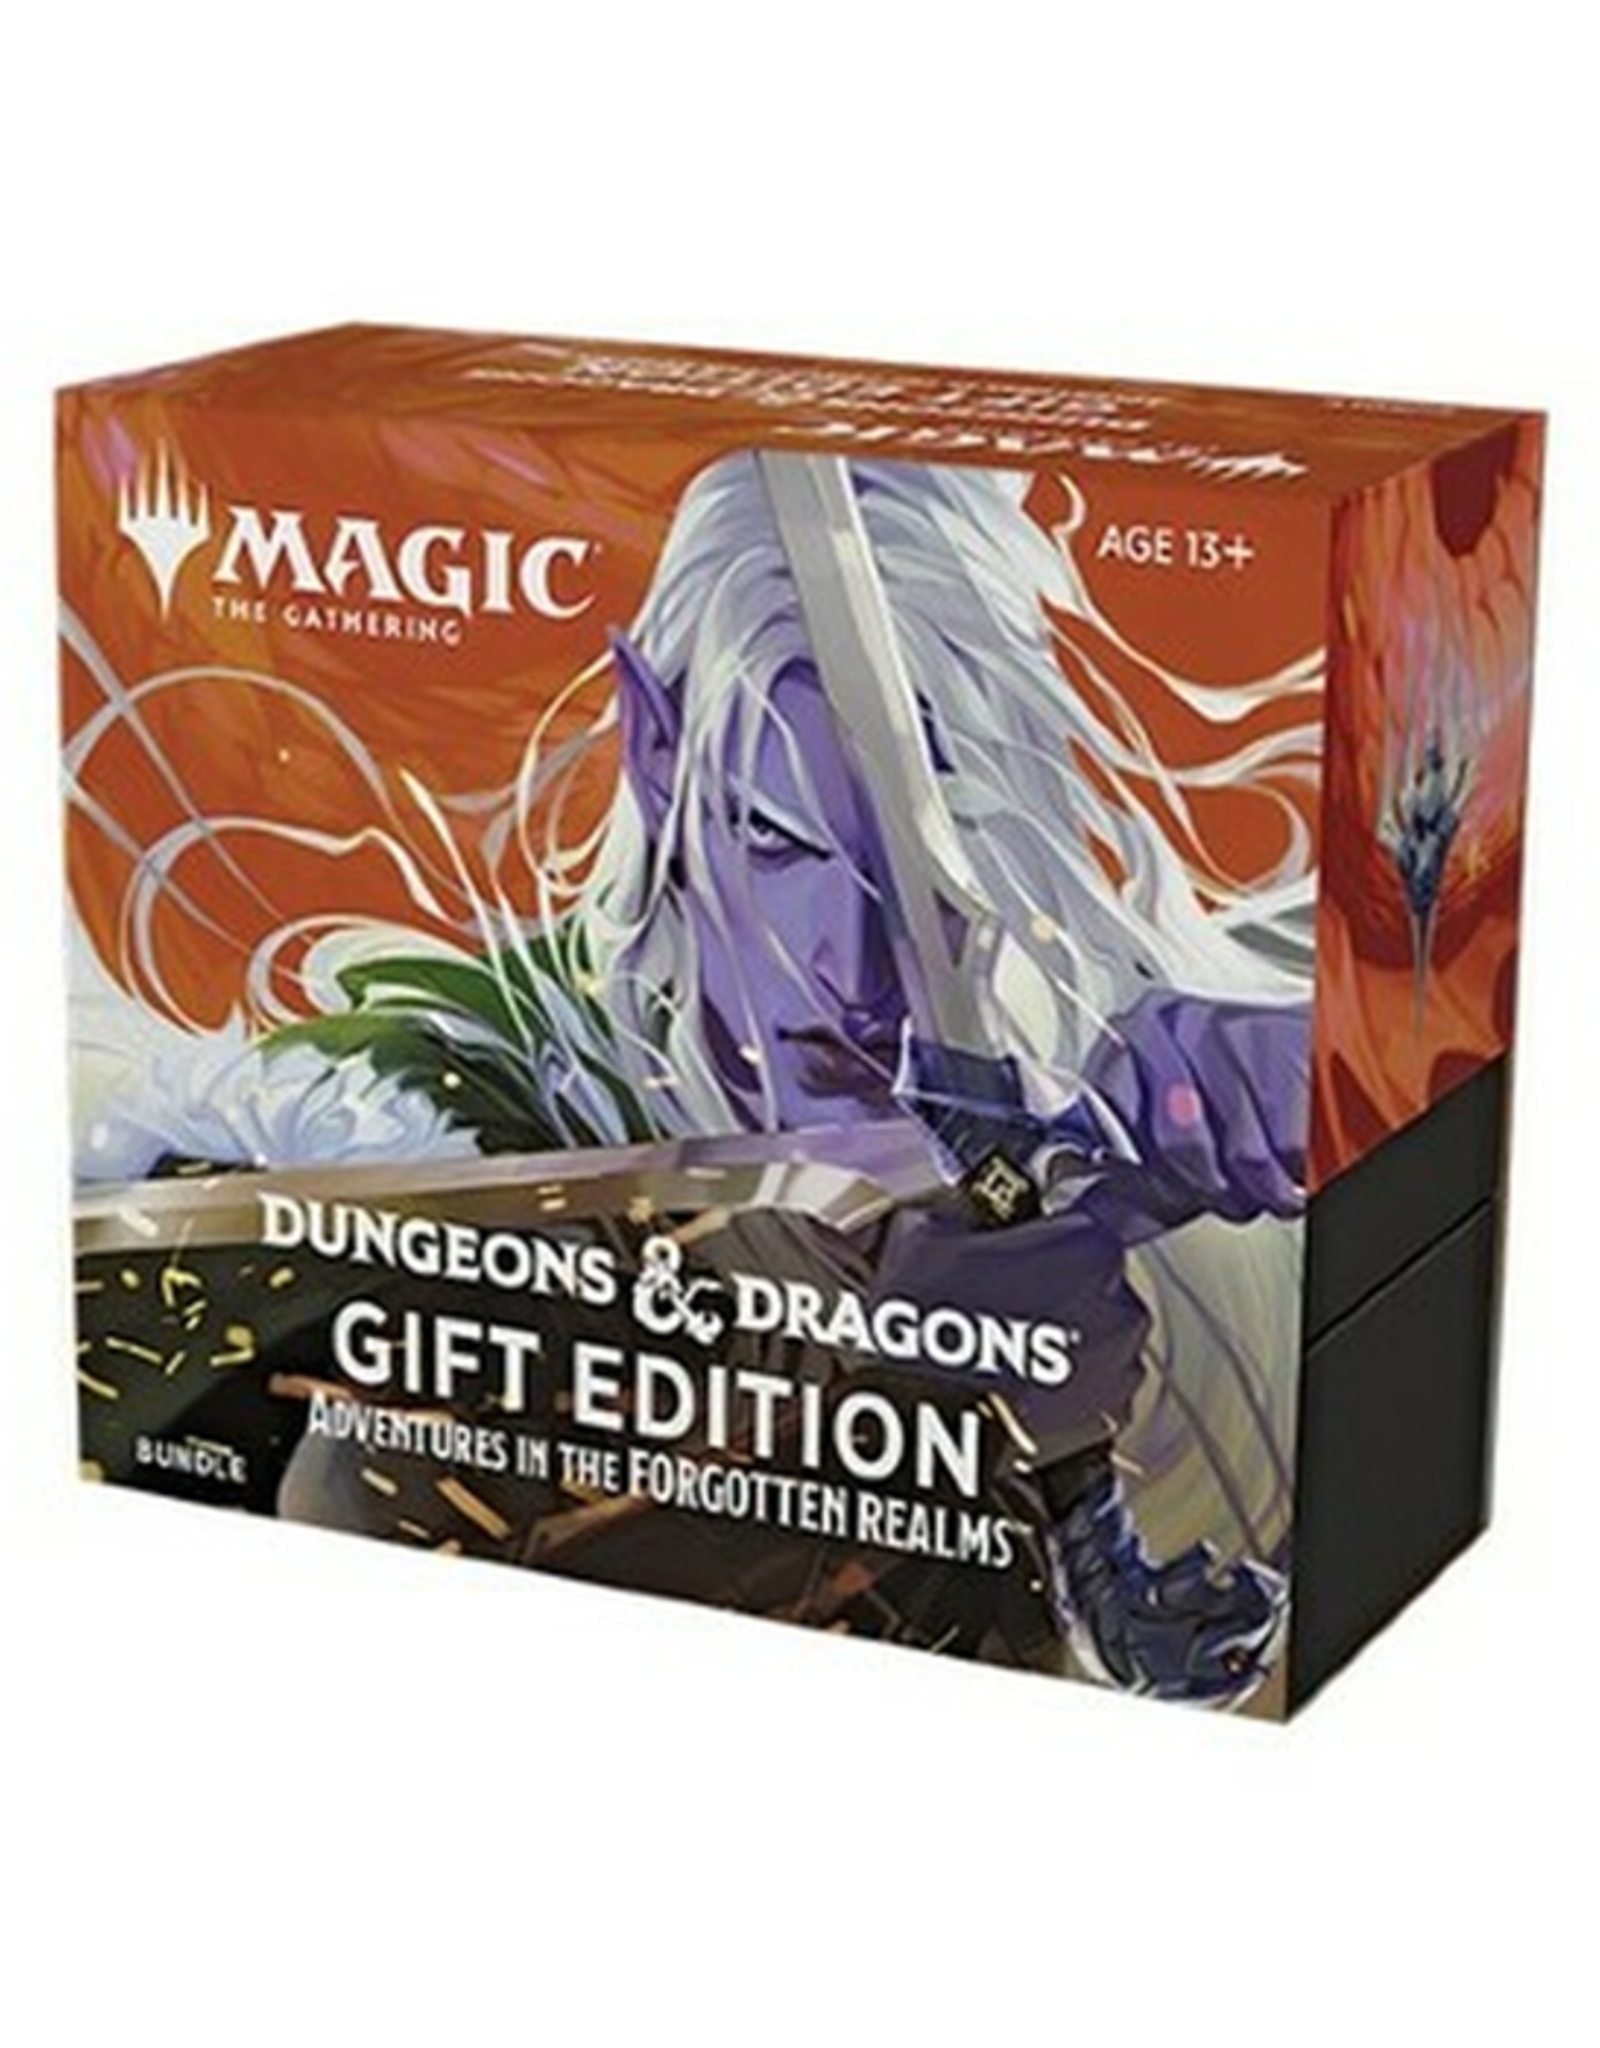 Magic: The Gathering Magic: The Gathering - Adventures in the Forgotten Realms - Bundle - Gift Edition